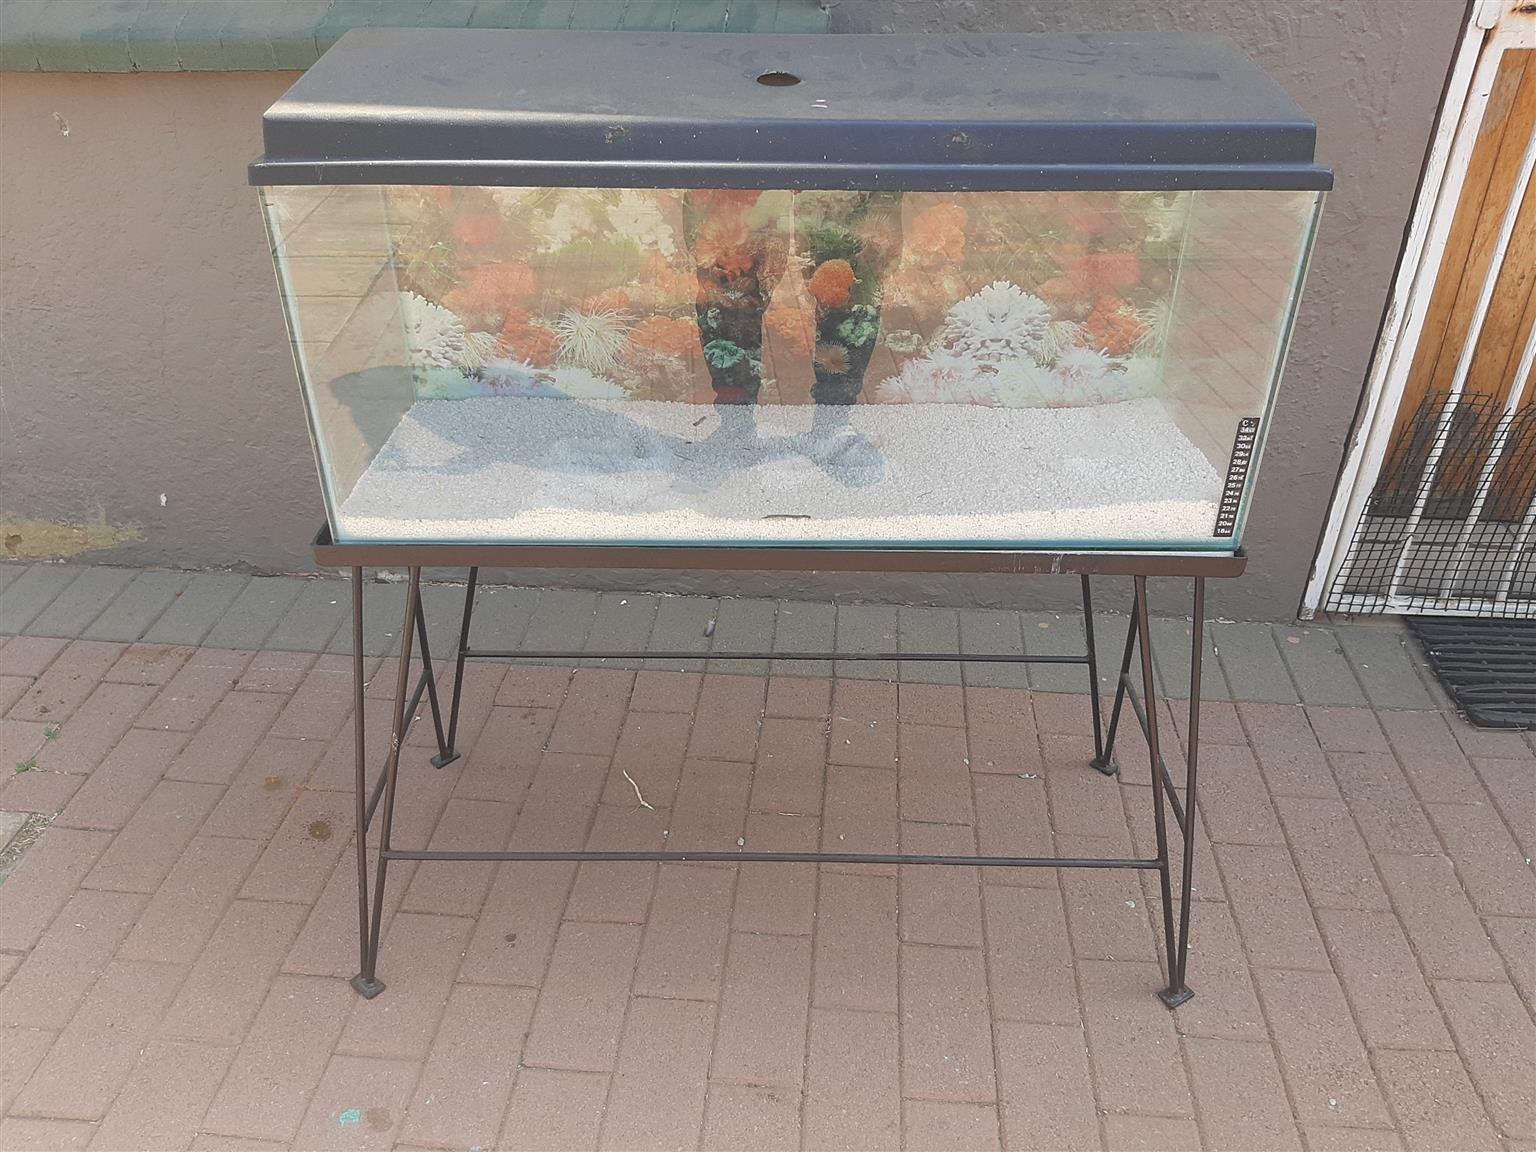 2 3foot fish tanks with stands and accessories for sale